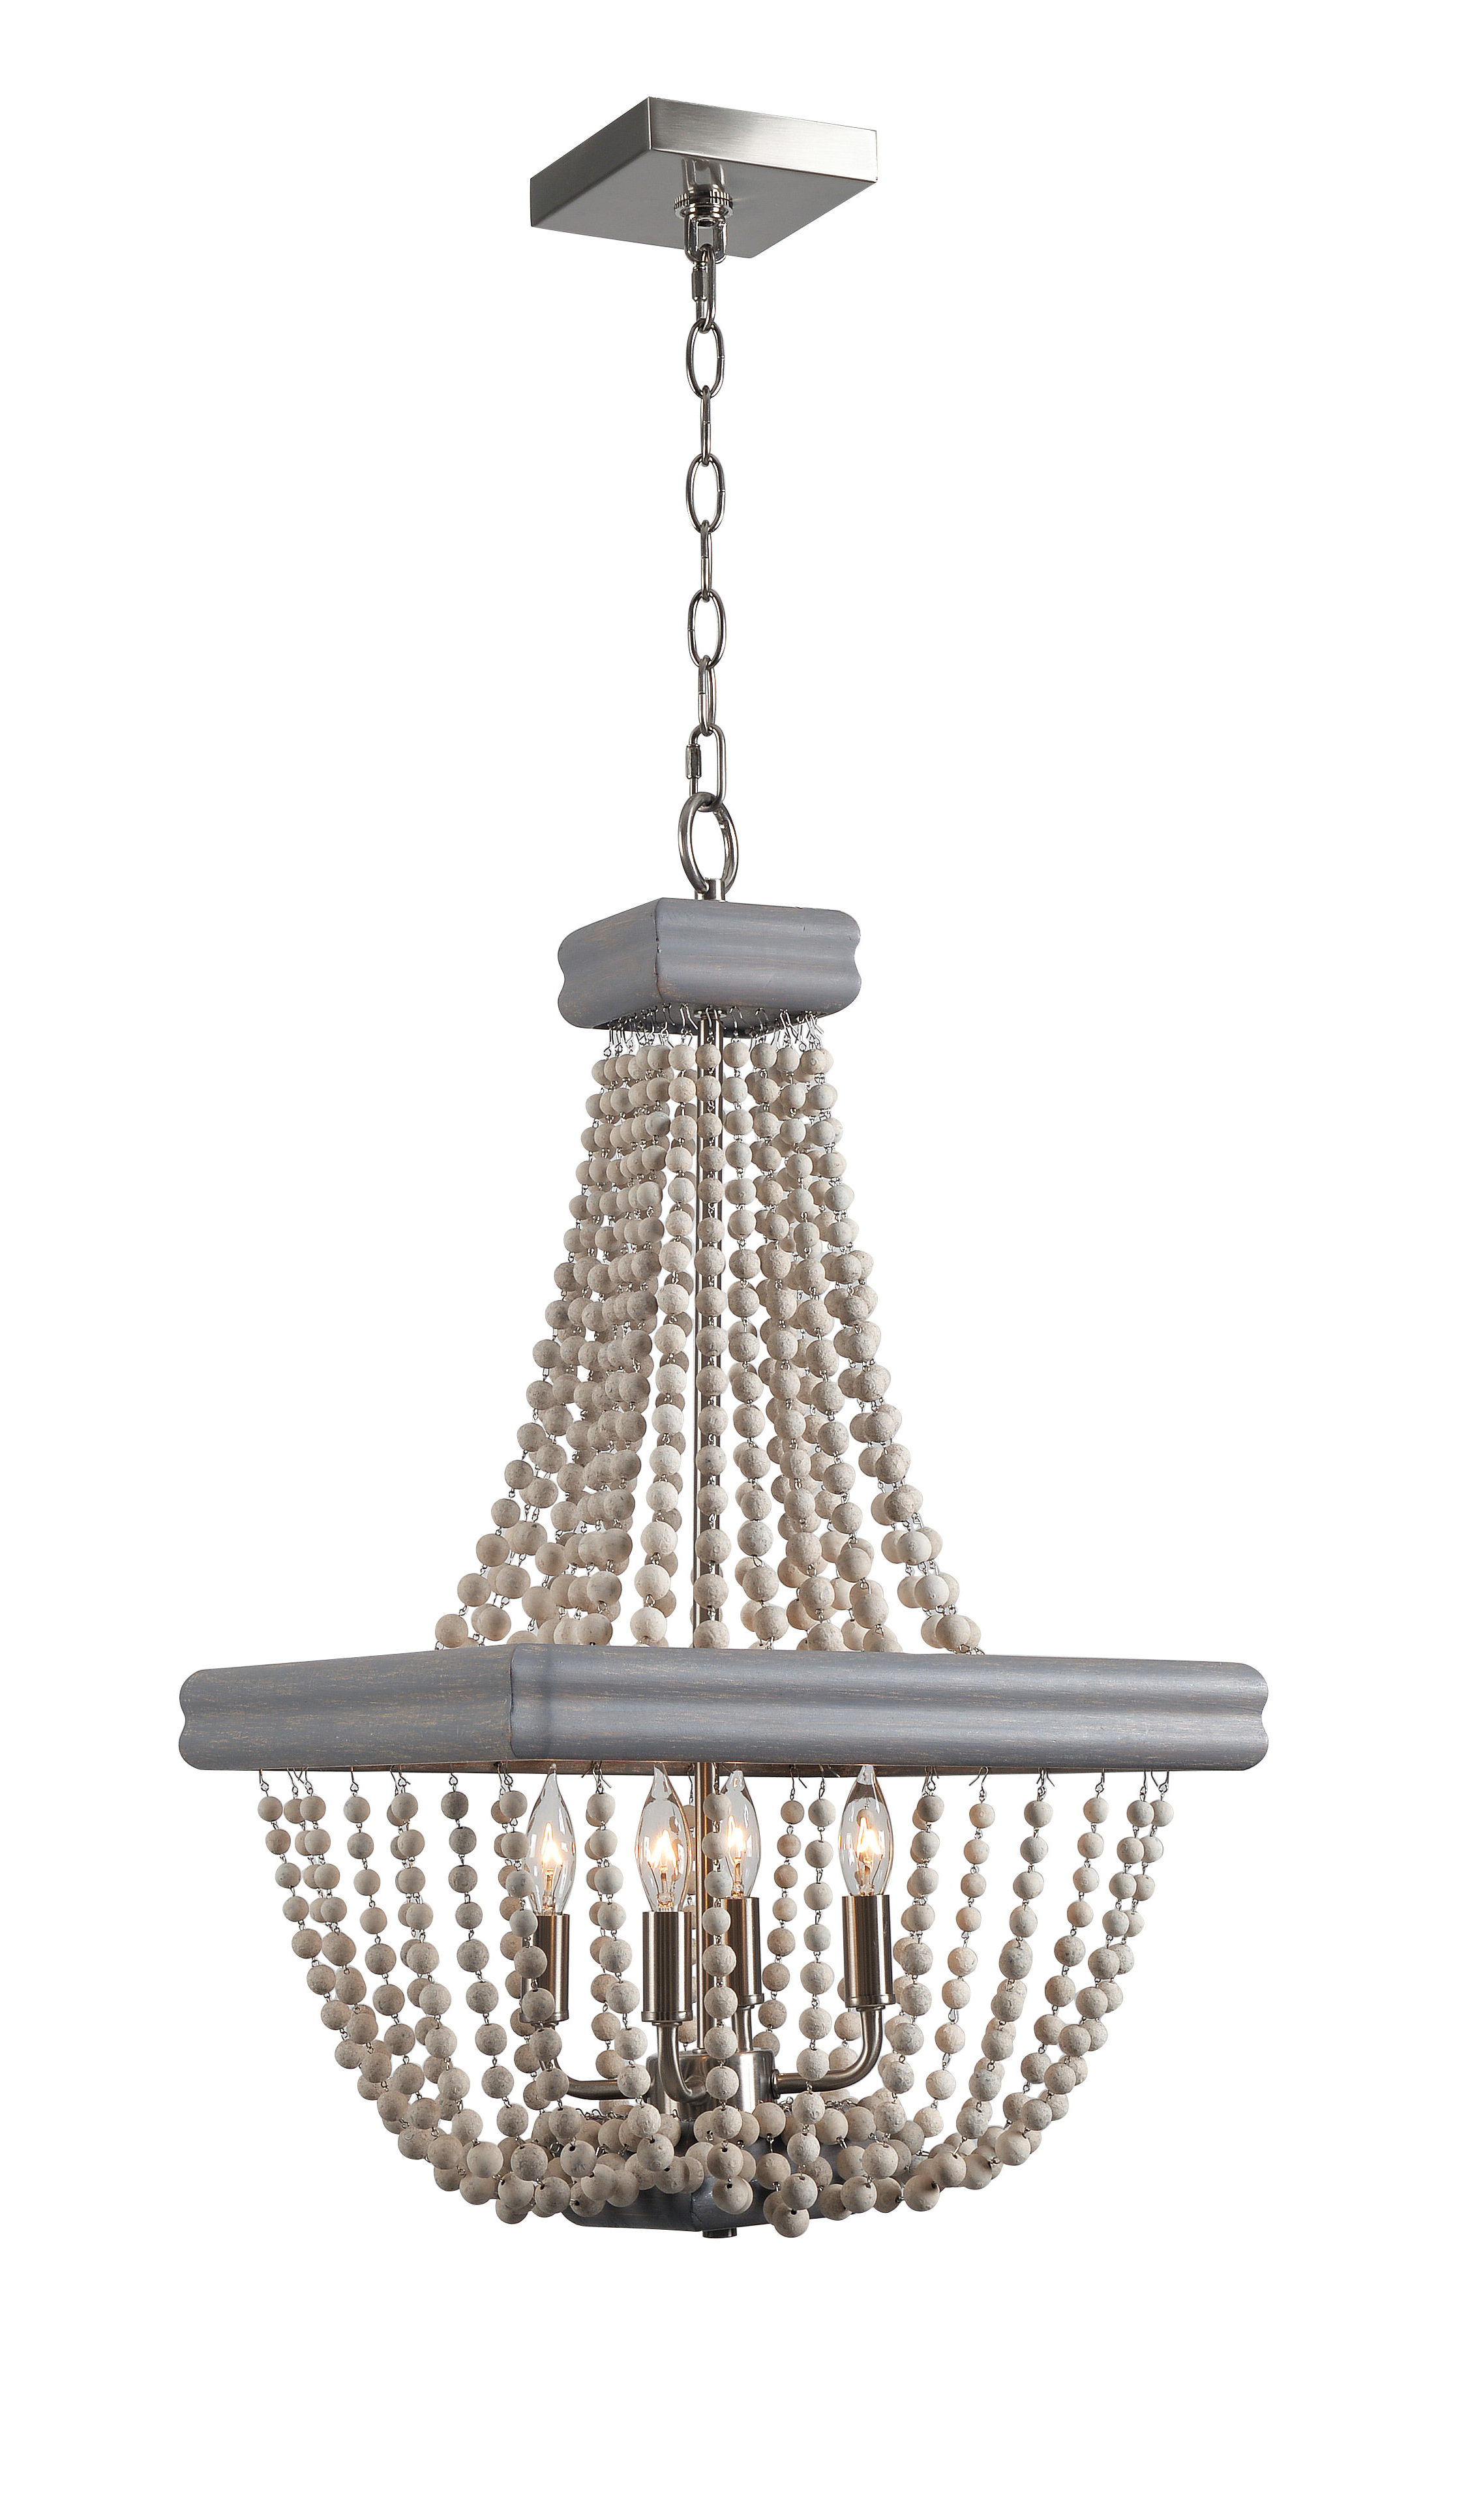 4 Light Empire Chandelier With Regard To Best And Newest Hatfield 3 Light Novelty Chandeliers (View 2 of 20)